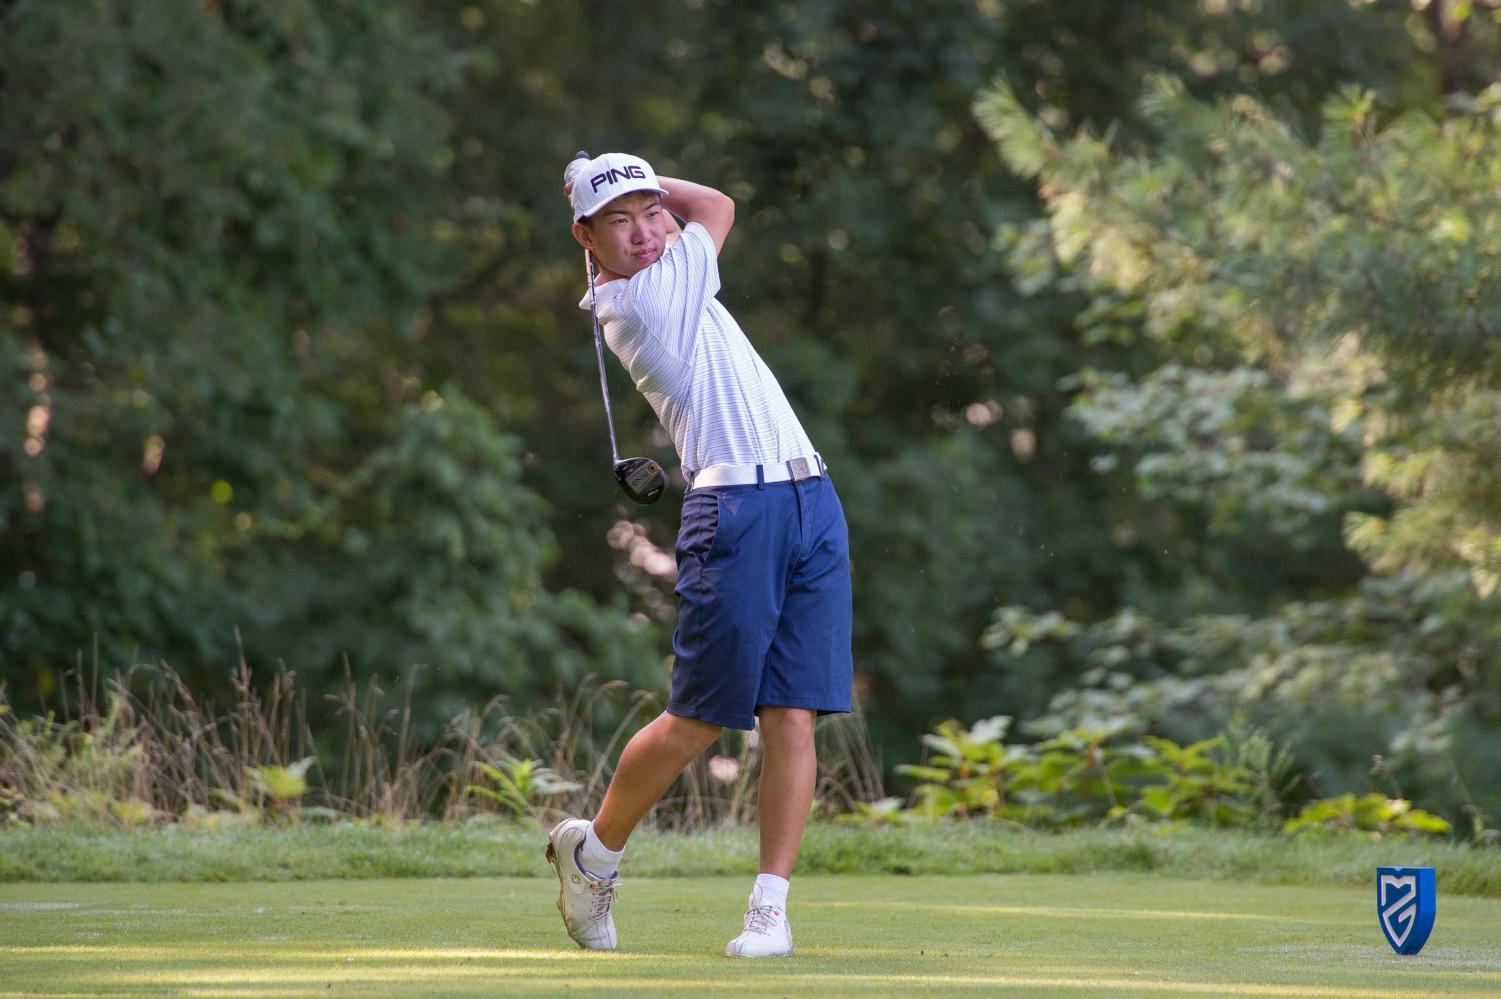 Senior James Imai golfs daily to improve his game. According to Imai, practice is essential to make progress and achieve his goals. Imai committed to Northwestern University for golf.